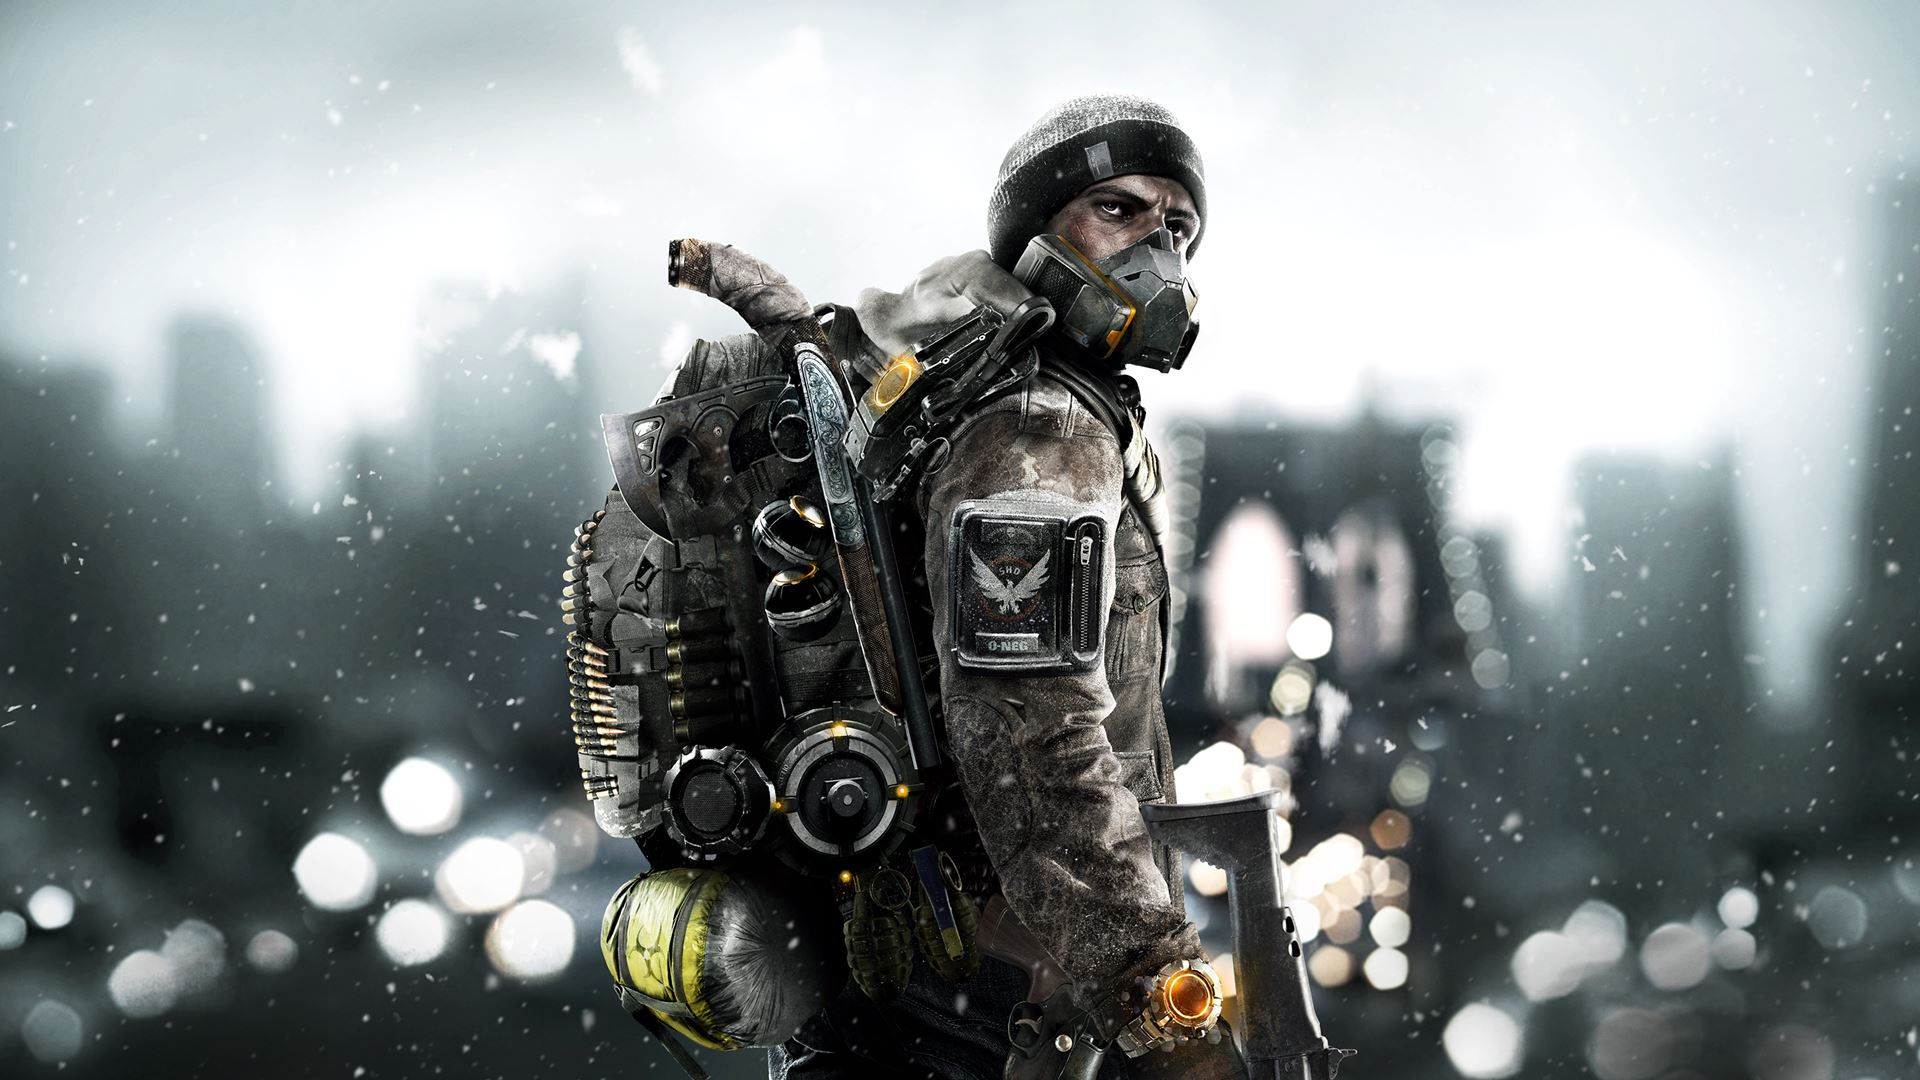 """The Division"" Director Leaves Ubisoft for Square Enix - Joining IO Interactive"